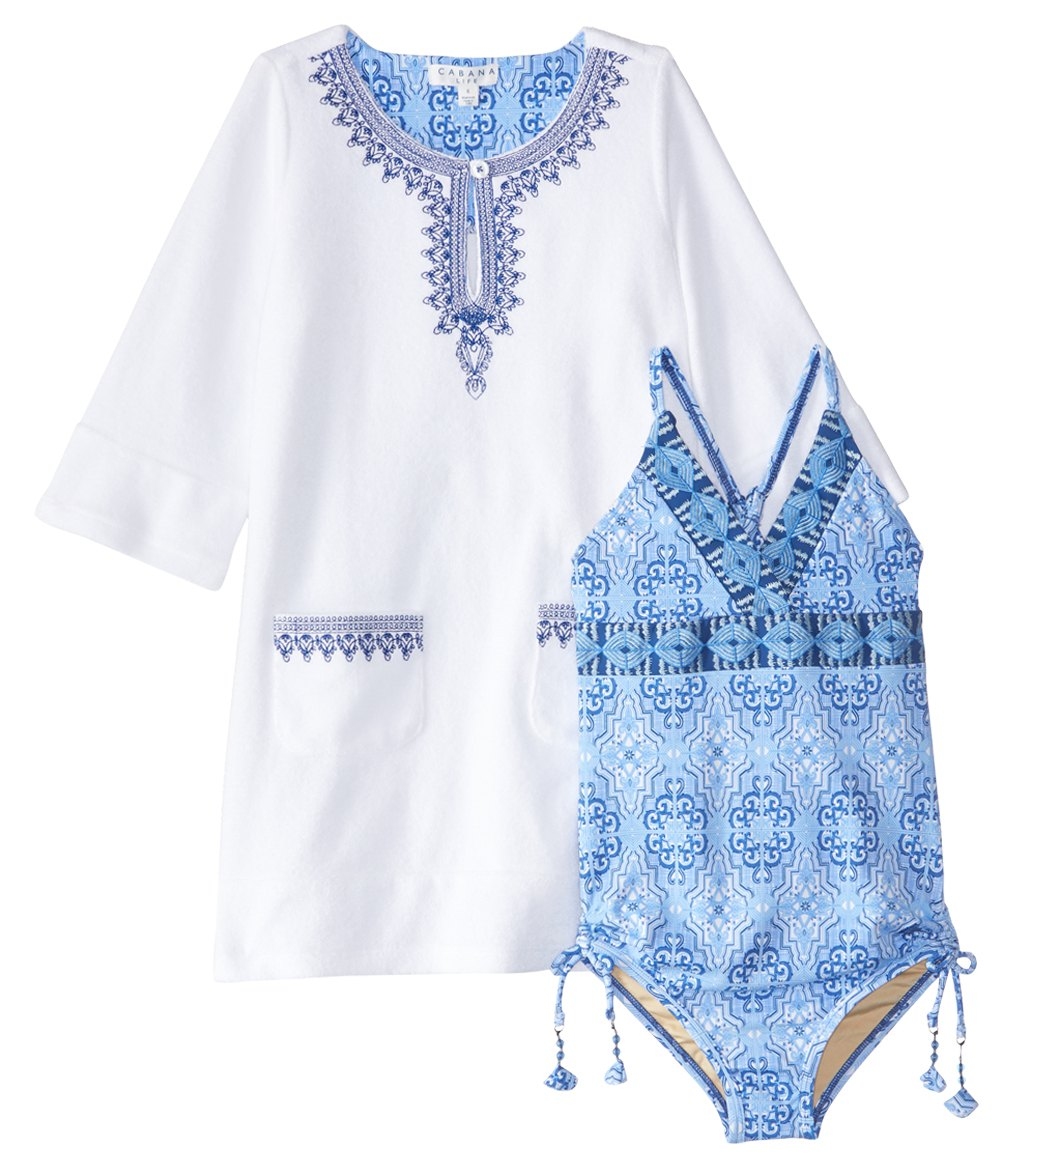 4db5ccf203 Cabana Life Girls  UPF 50+ Moroccan Tile Swimsuit   Terry Cover Up Set  (6mos-6X) at SwimOutlet.com - Free Shipping